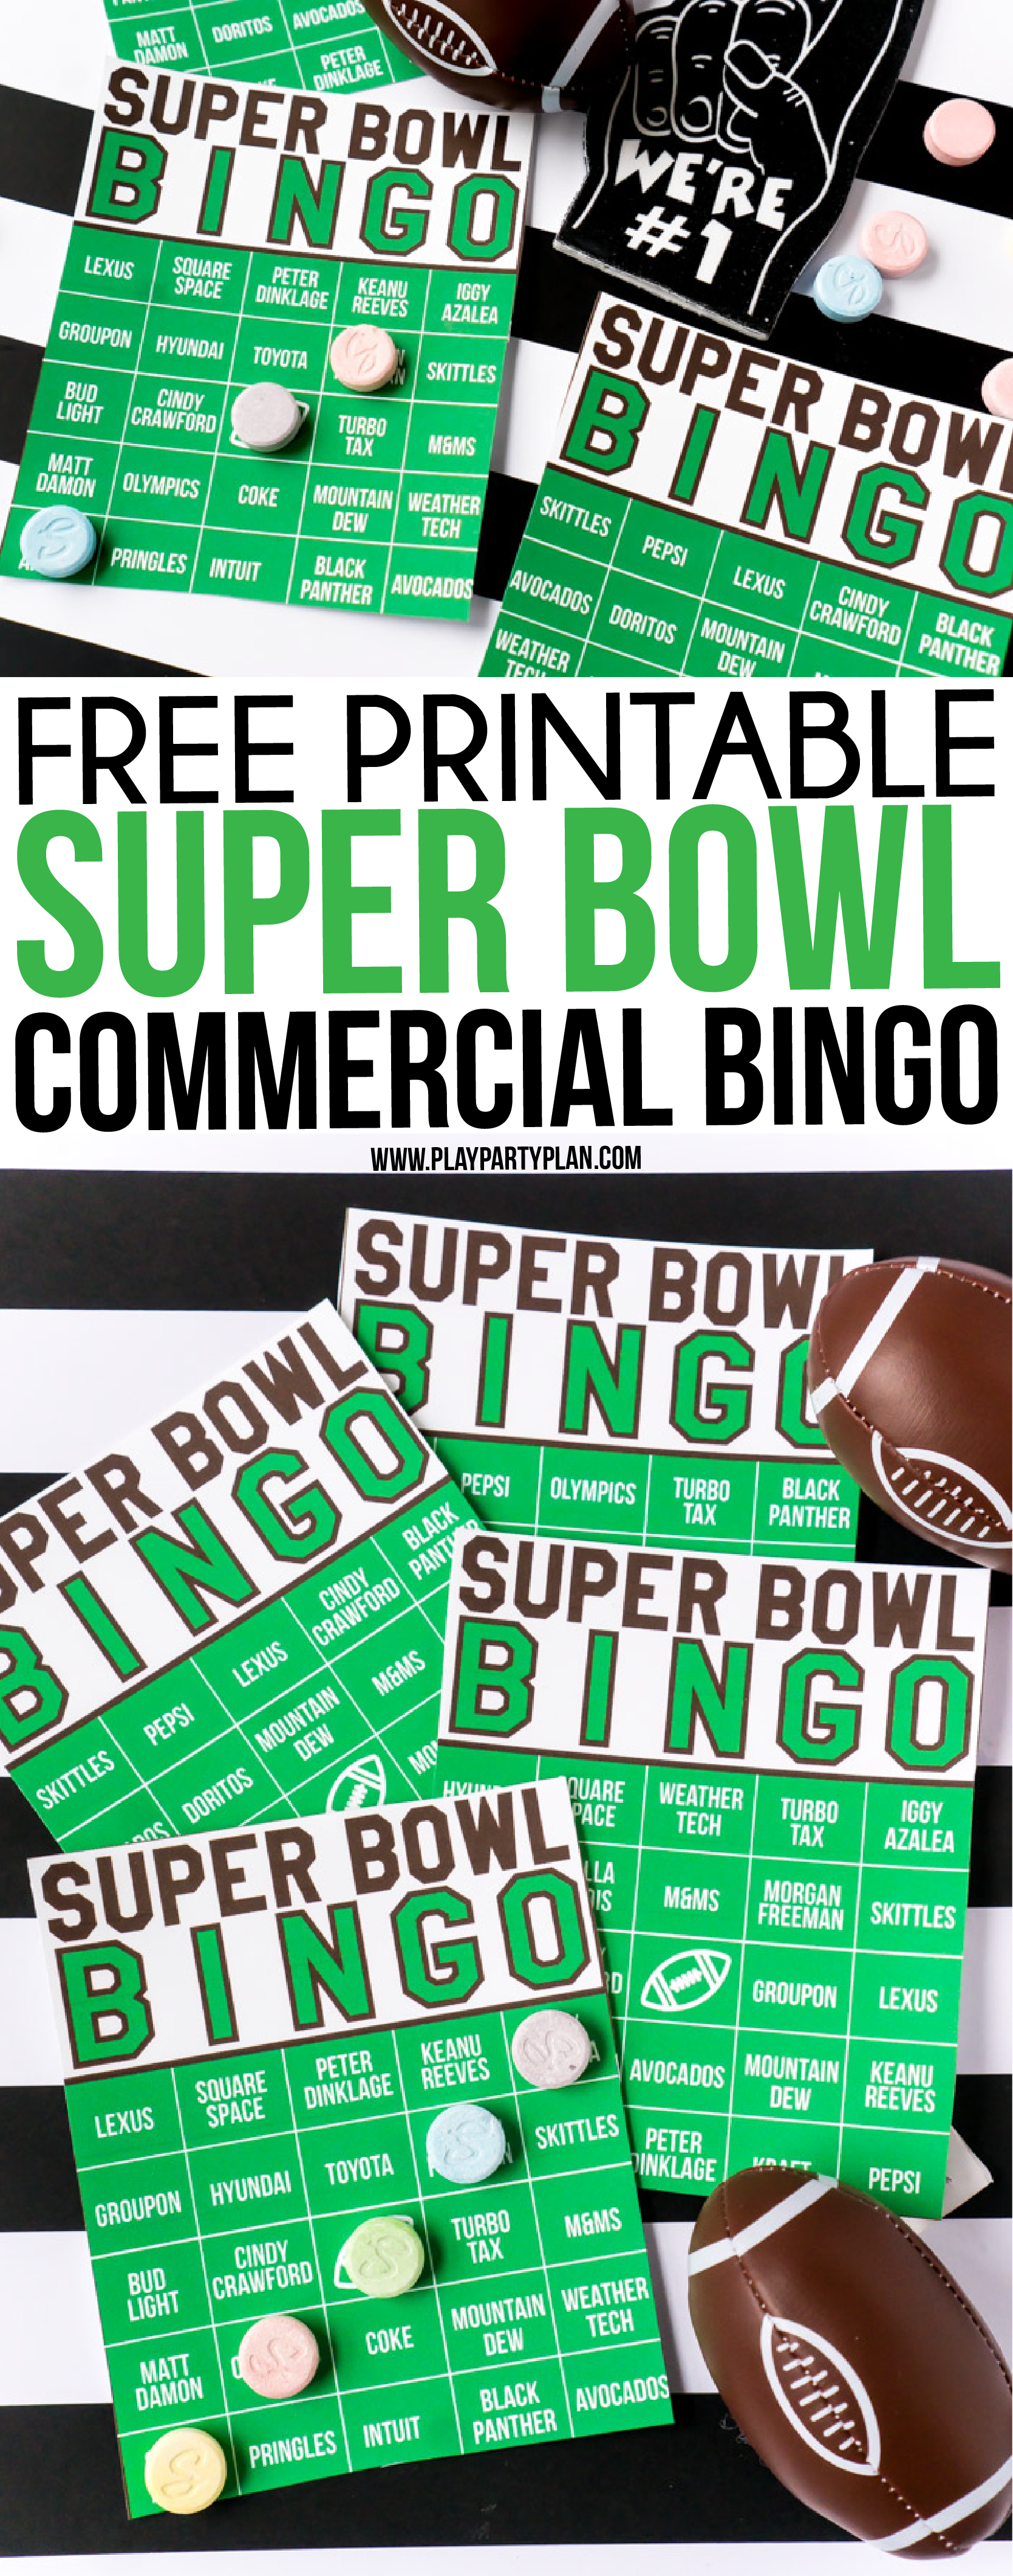 photo regarding Superbowl Boards Printable known as The Perfect Tremendous Bowl Bingo Video game - 2019 Tremendous Bowl Business